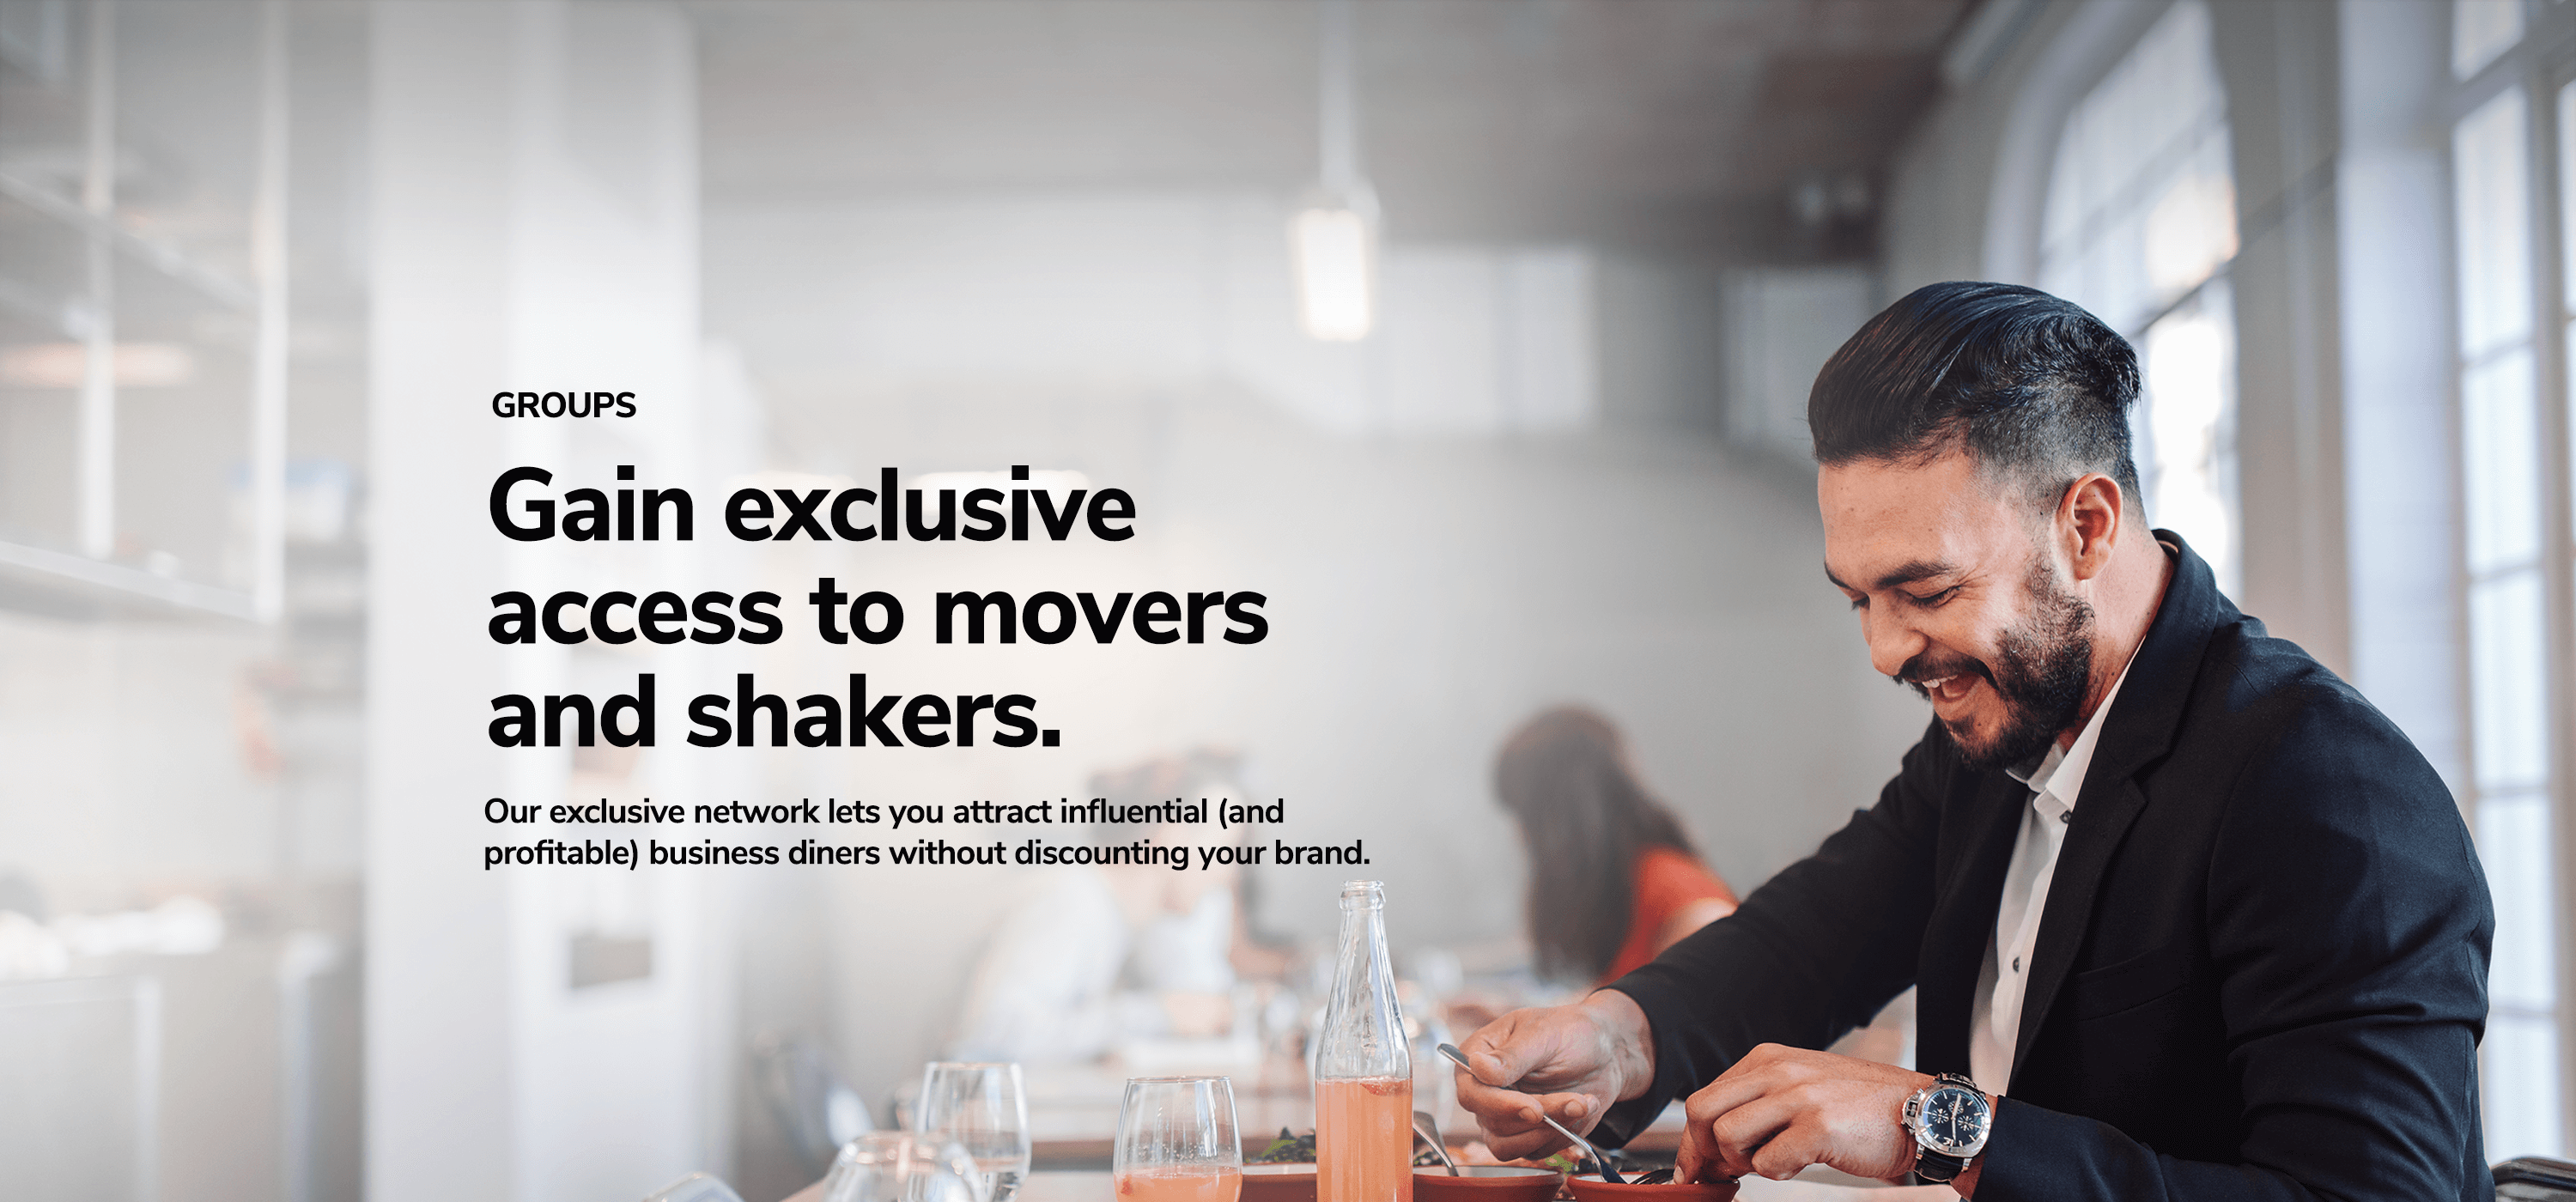 Our exclusive network lets you attract influential business diners without discounting your brand. Dinova Image